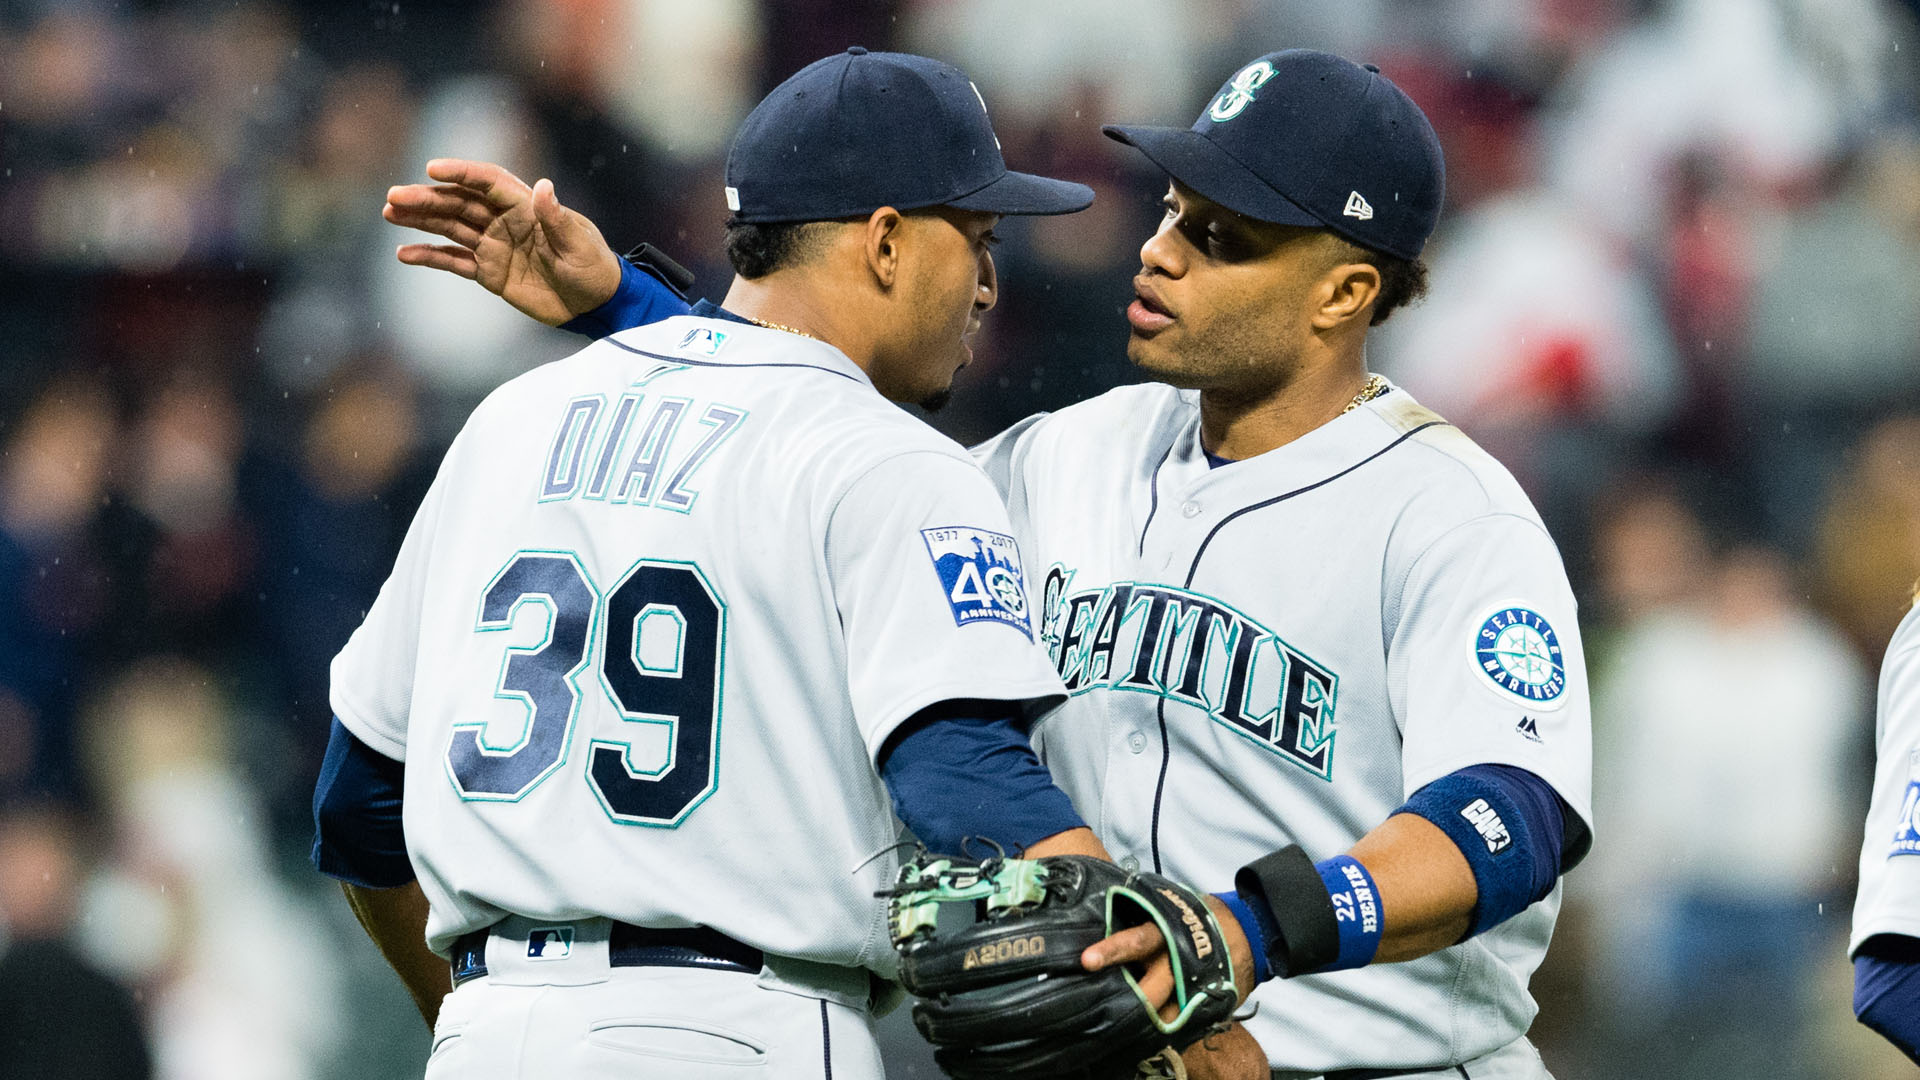 Major League Baseball  trade rumors: Mets close to getting Cano, Diaz